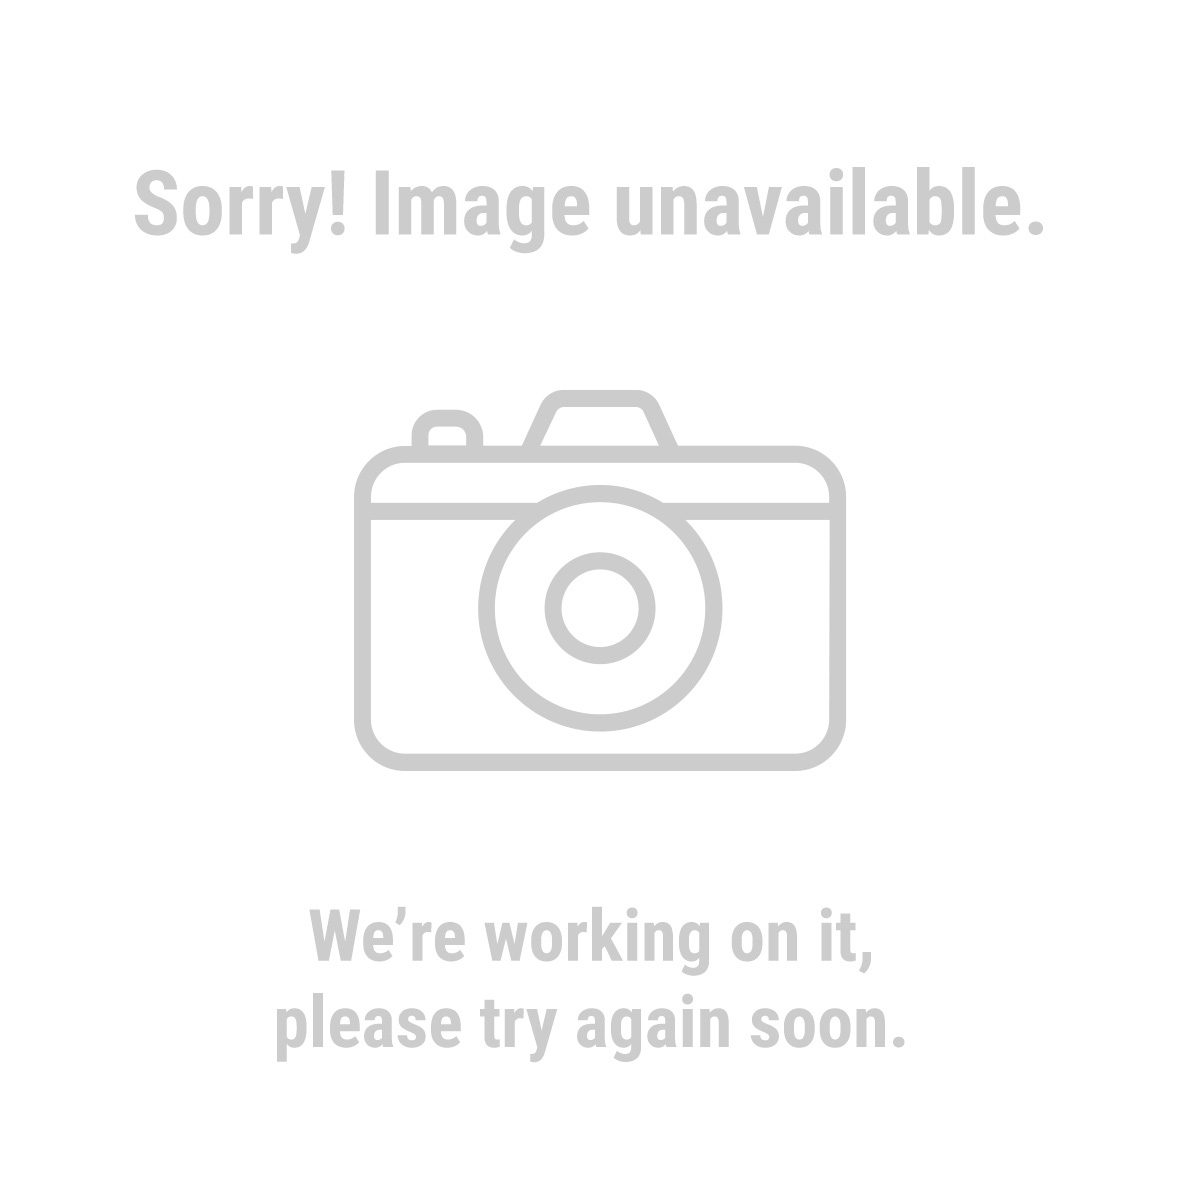 Haul-Master 66171 600 lb. Capacity Extra Wide Hand Truck